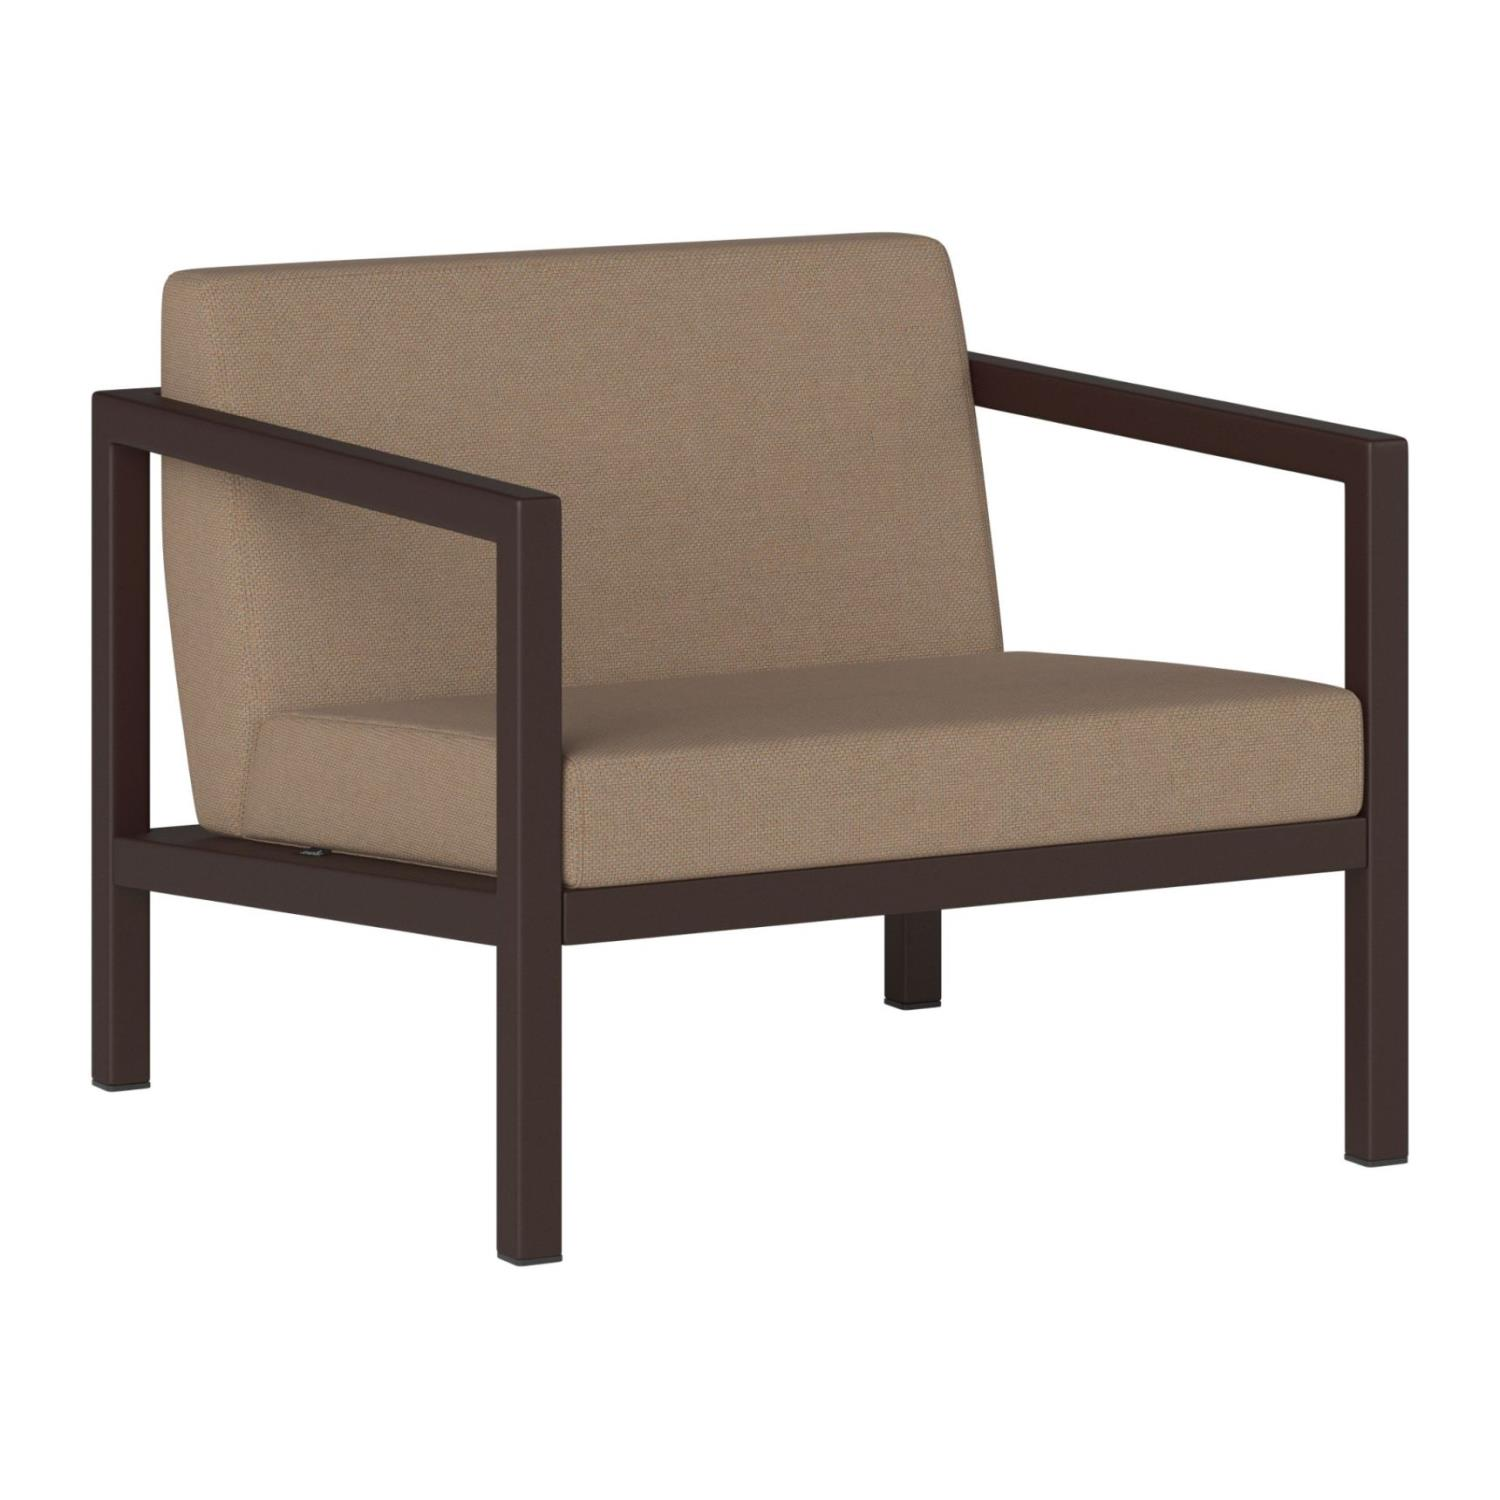 Frame Lounge Chair   M/puter